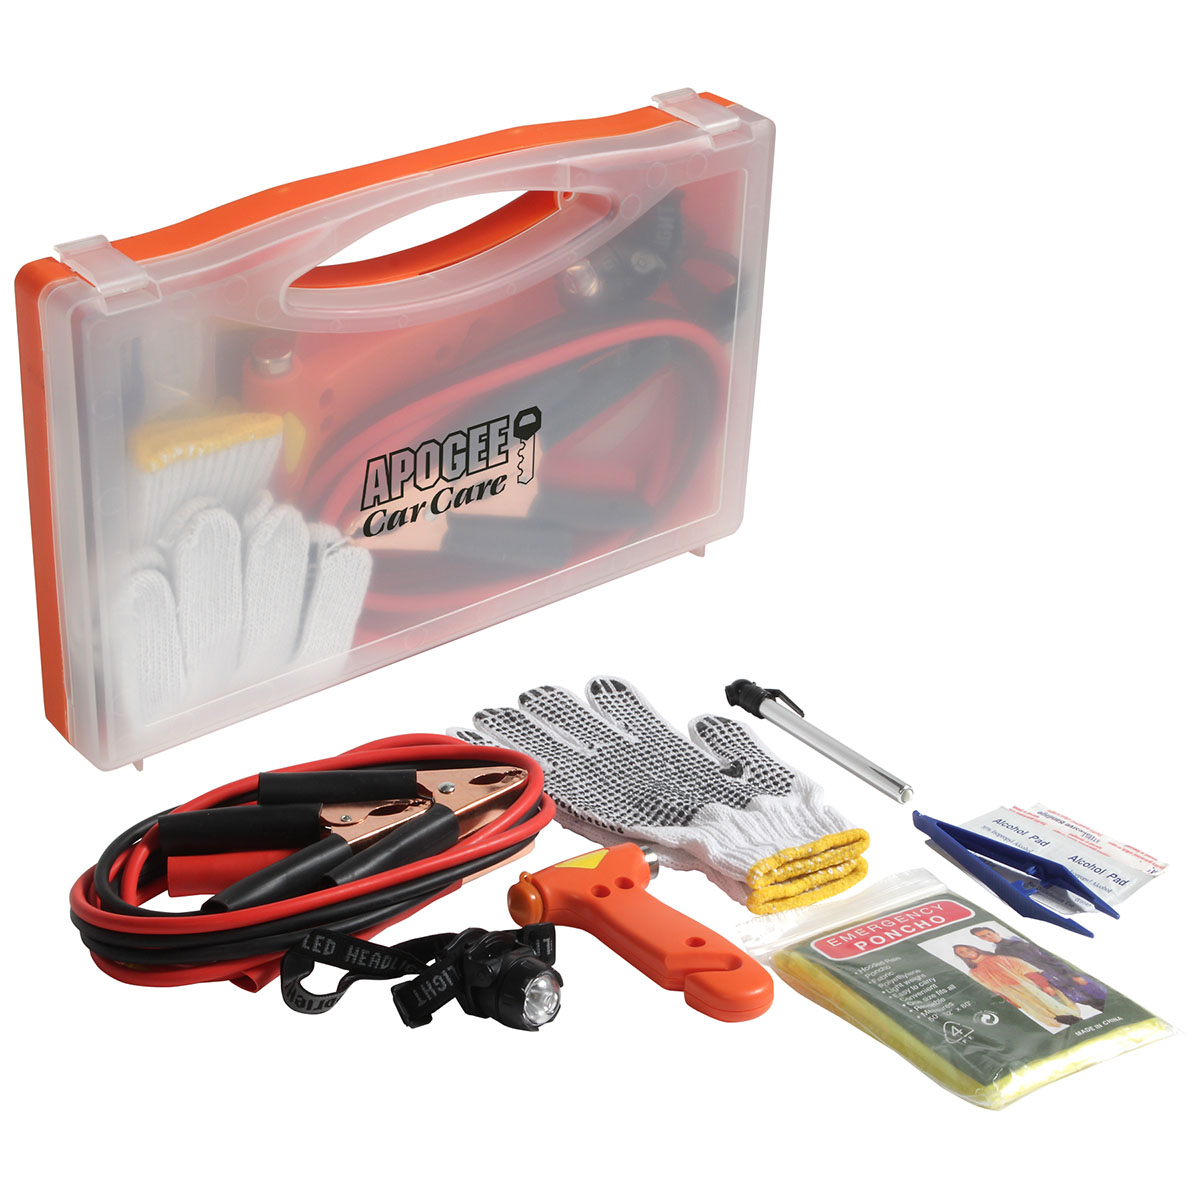 Crossroad Emergency Road Kit, WAU-CE13, 1 Colour Imprint